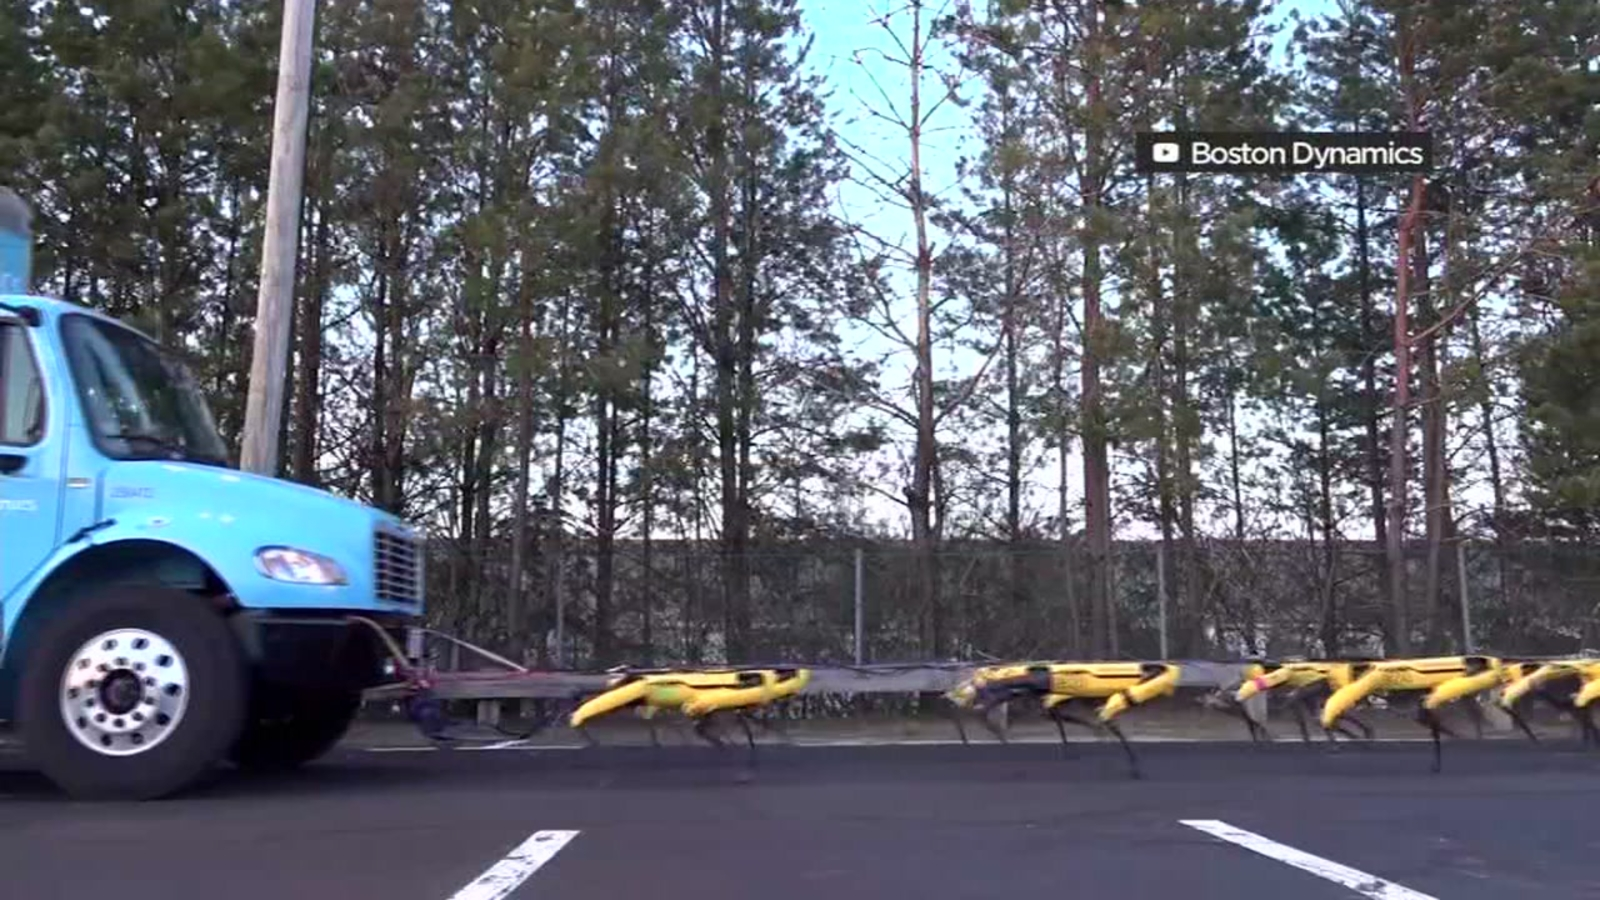 WATCH THIS: Team of robotic dogs pull massive diesel truck